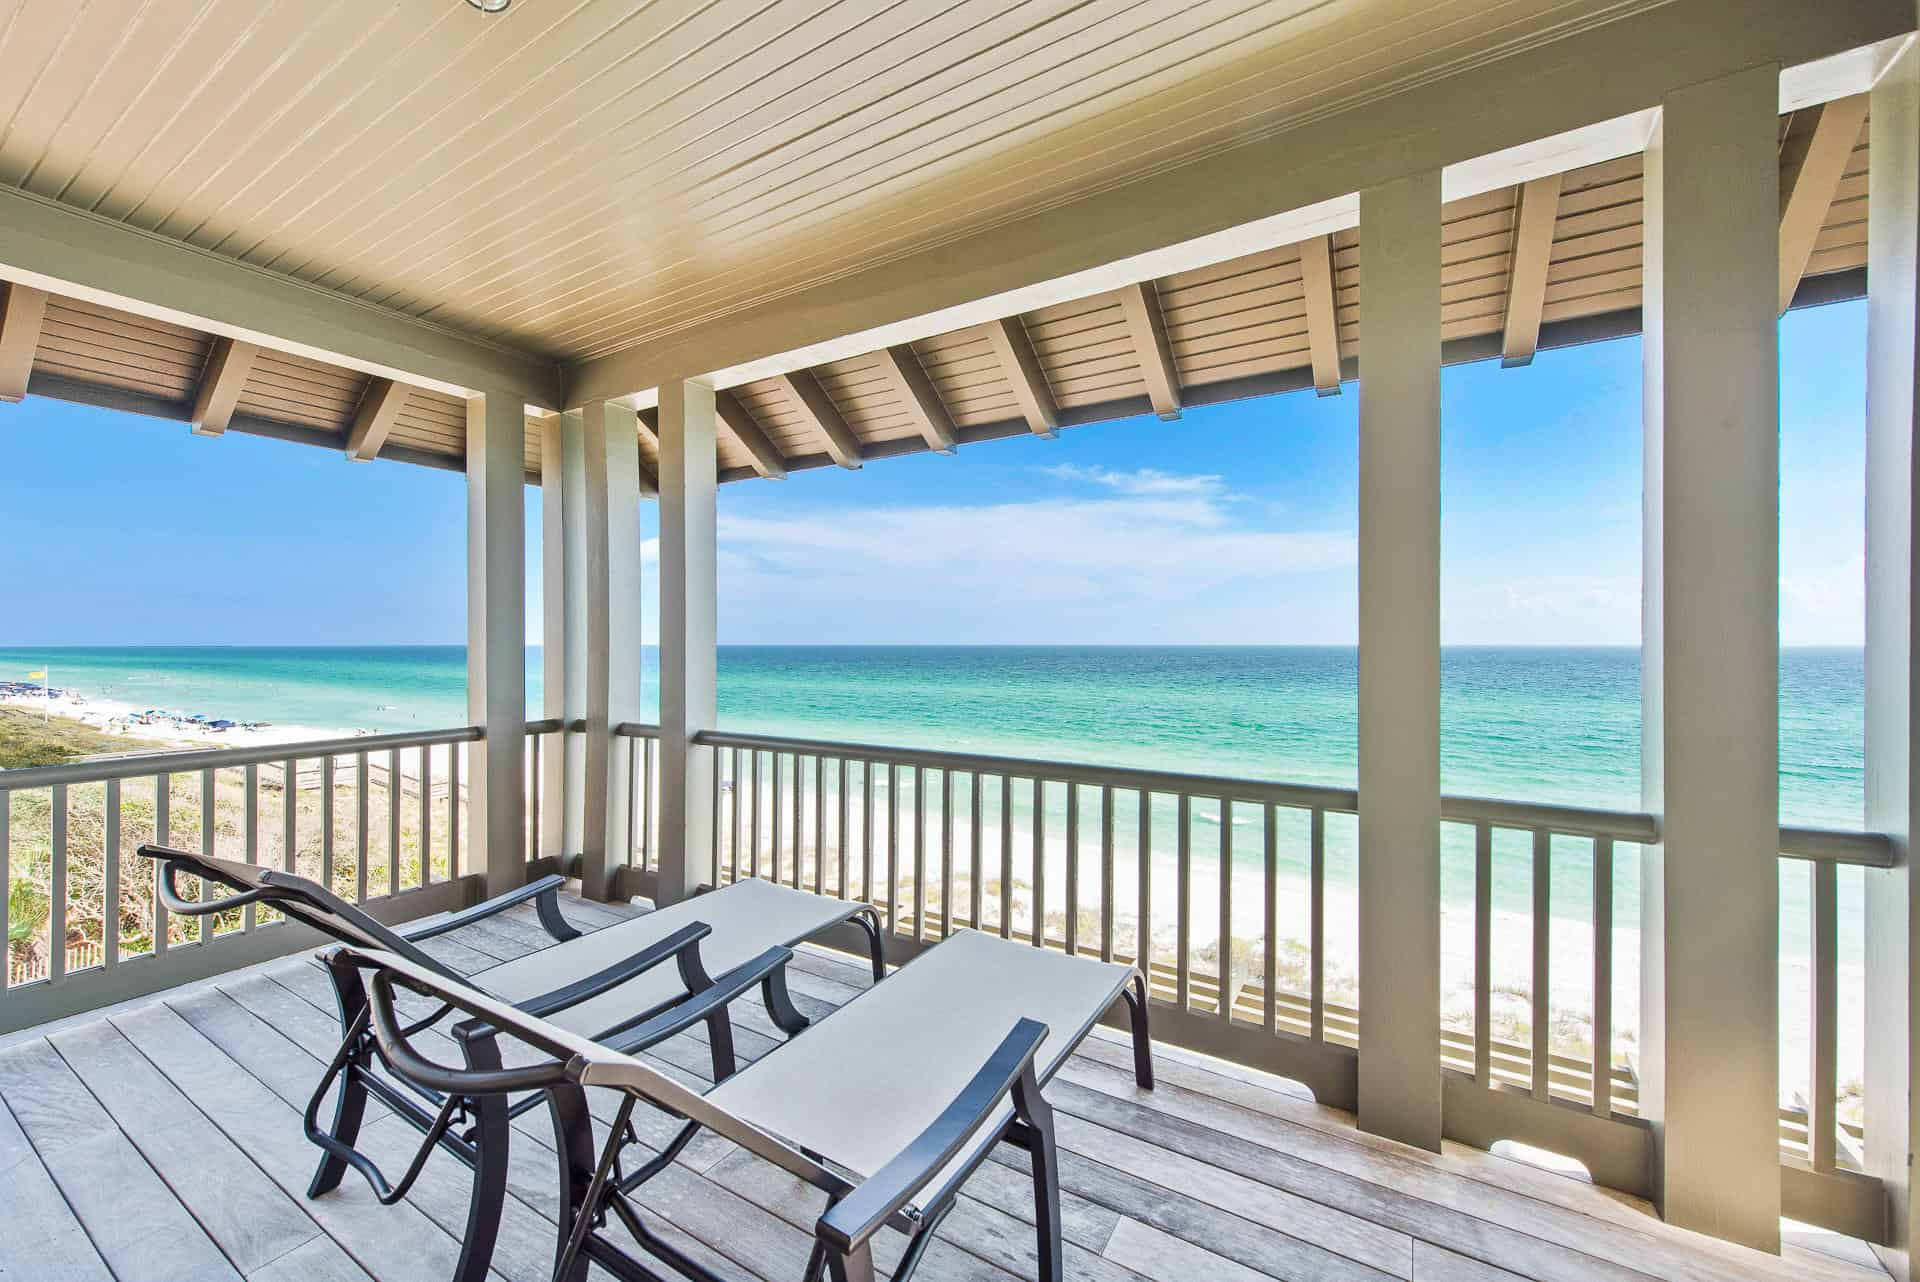 7 Features You Need For Your Beachhouse